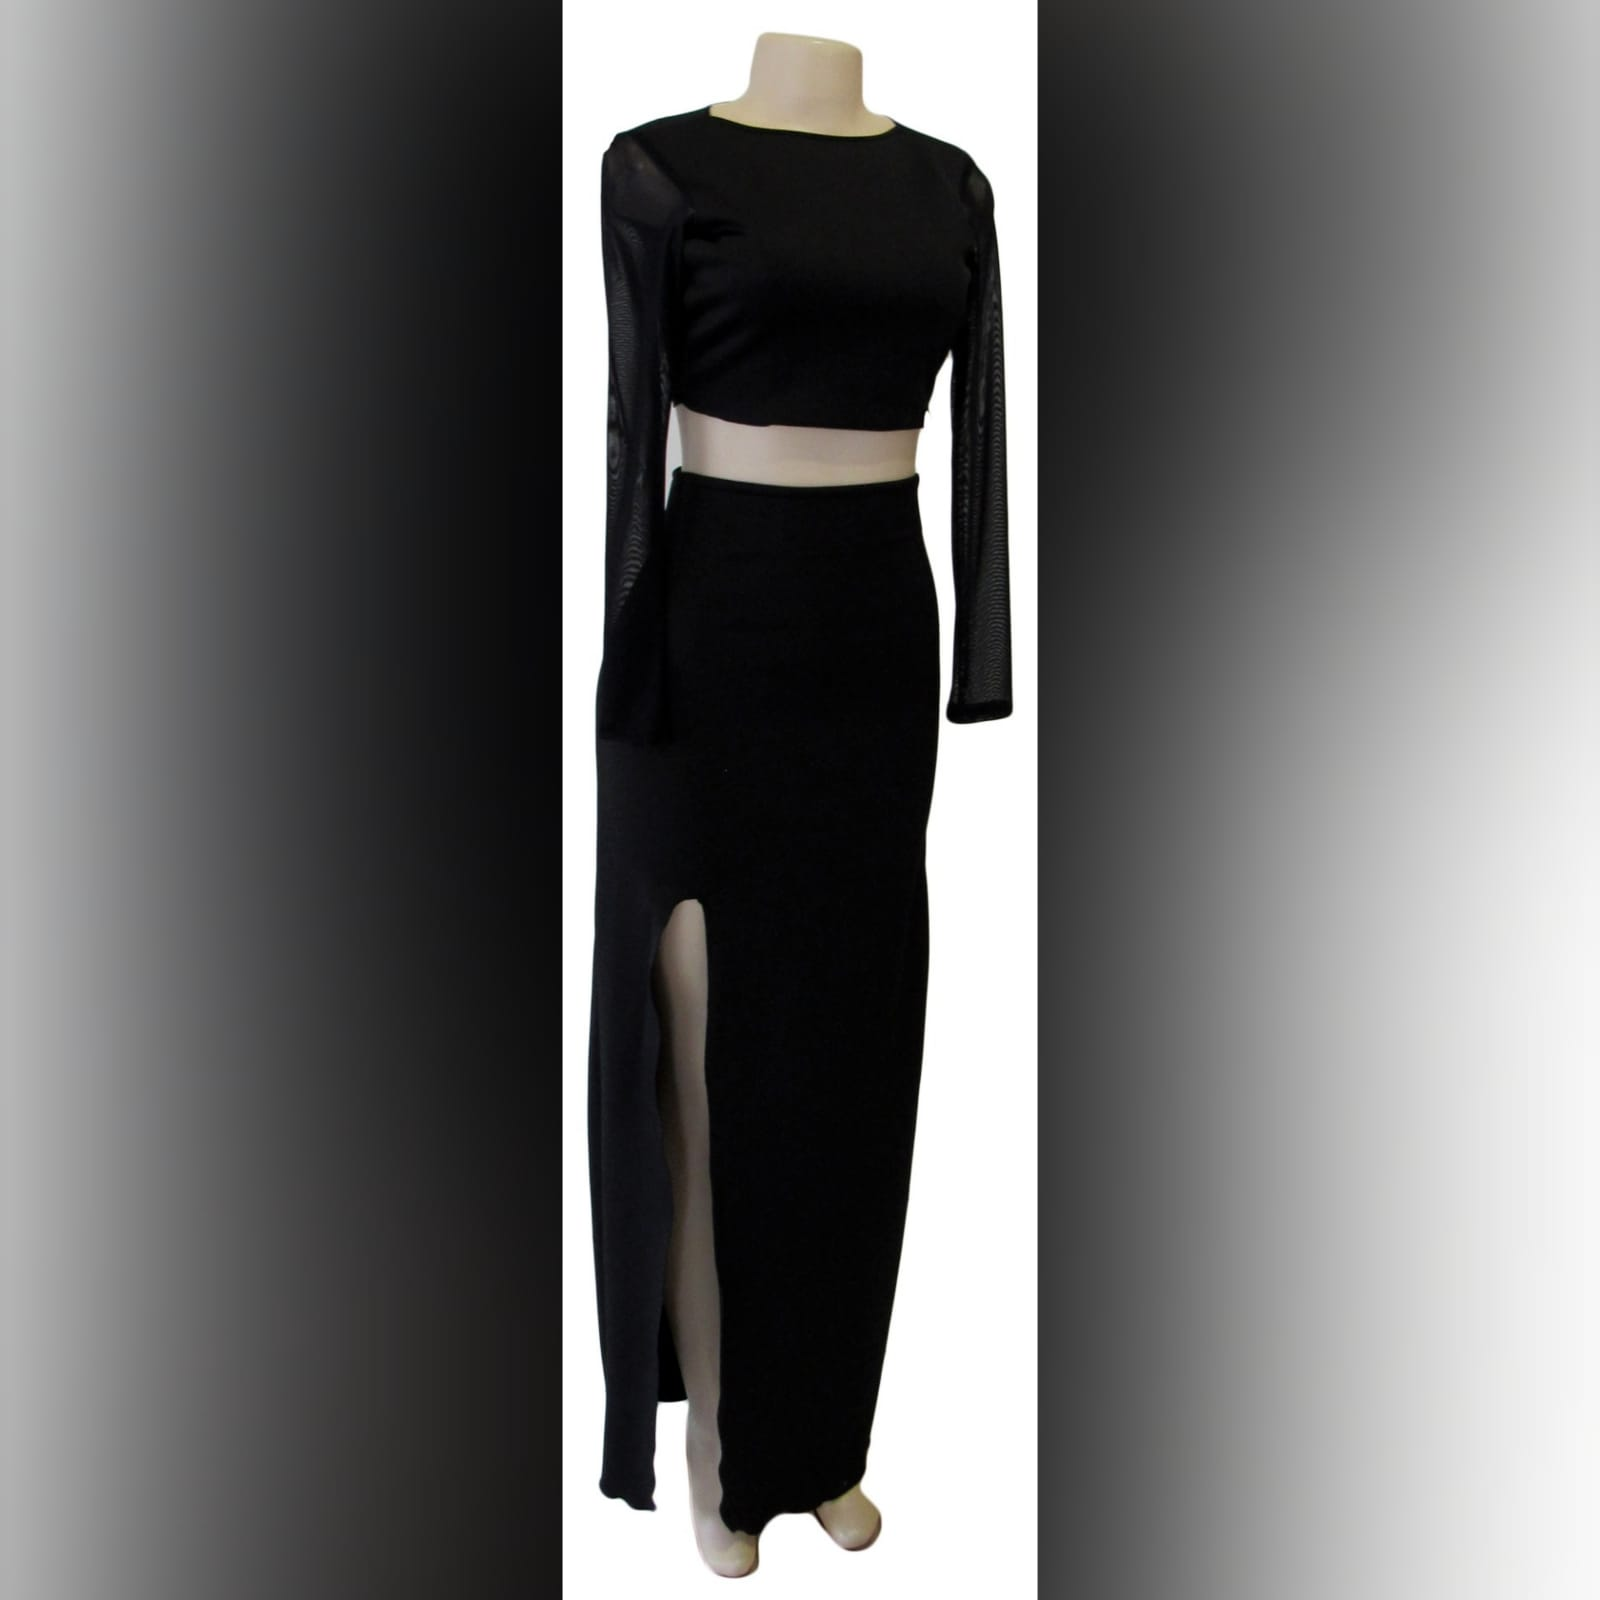 Black 2 piece smart casual dress 7 black 2 piece smart casual dress, with a crop top with long mesh sleeves, with a pencil long skirt with a slit